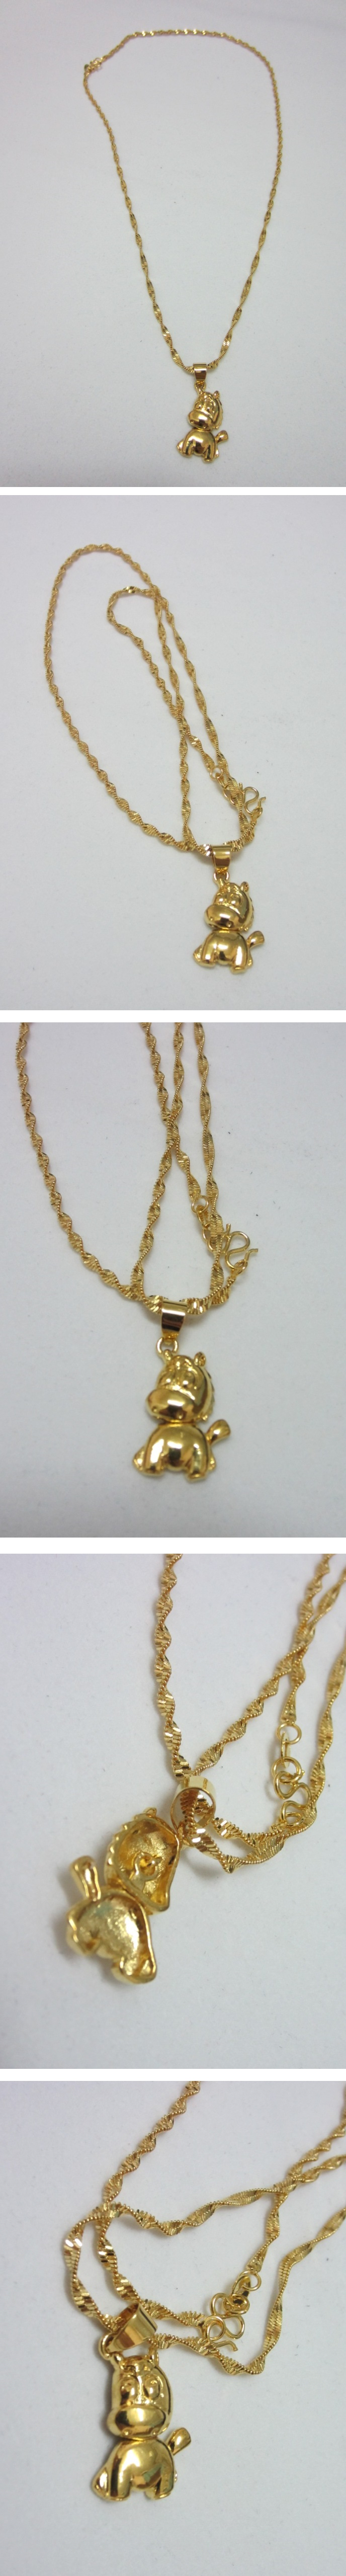 Cute Adorable Lucky Horse 24K Gold Necklace